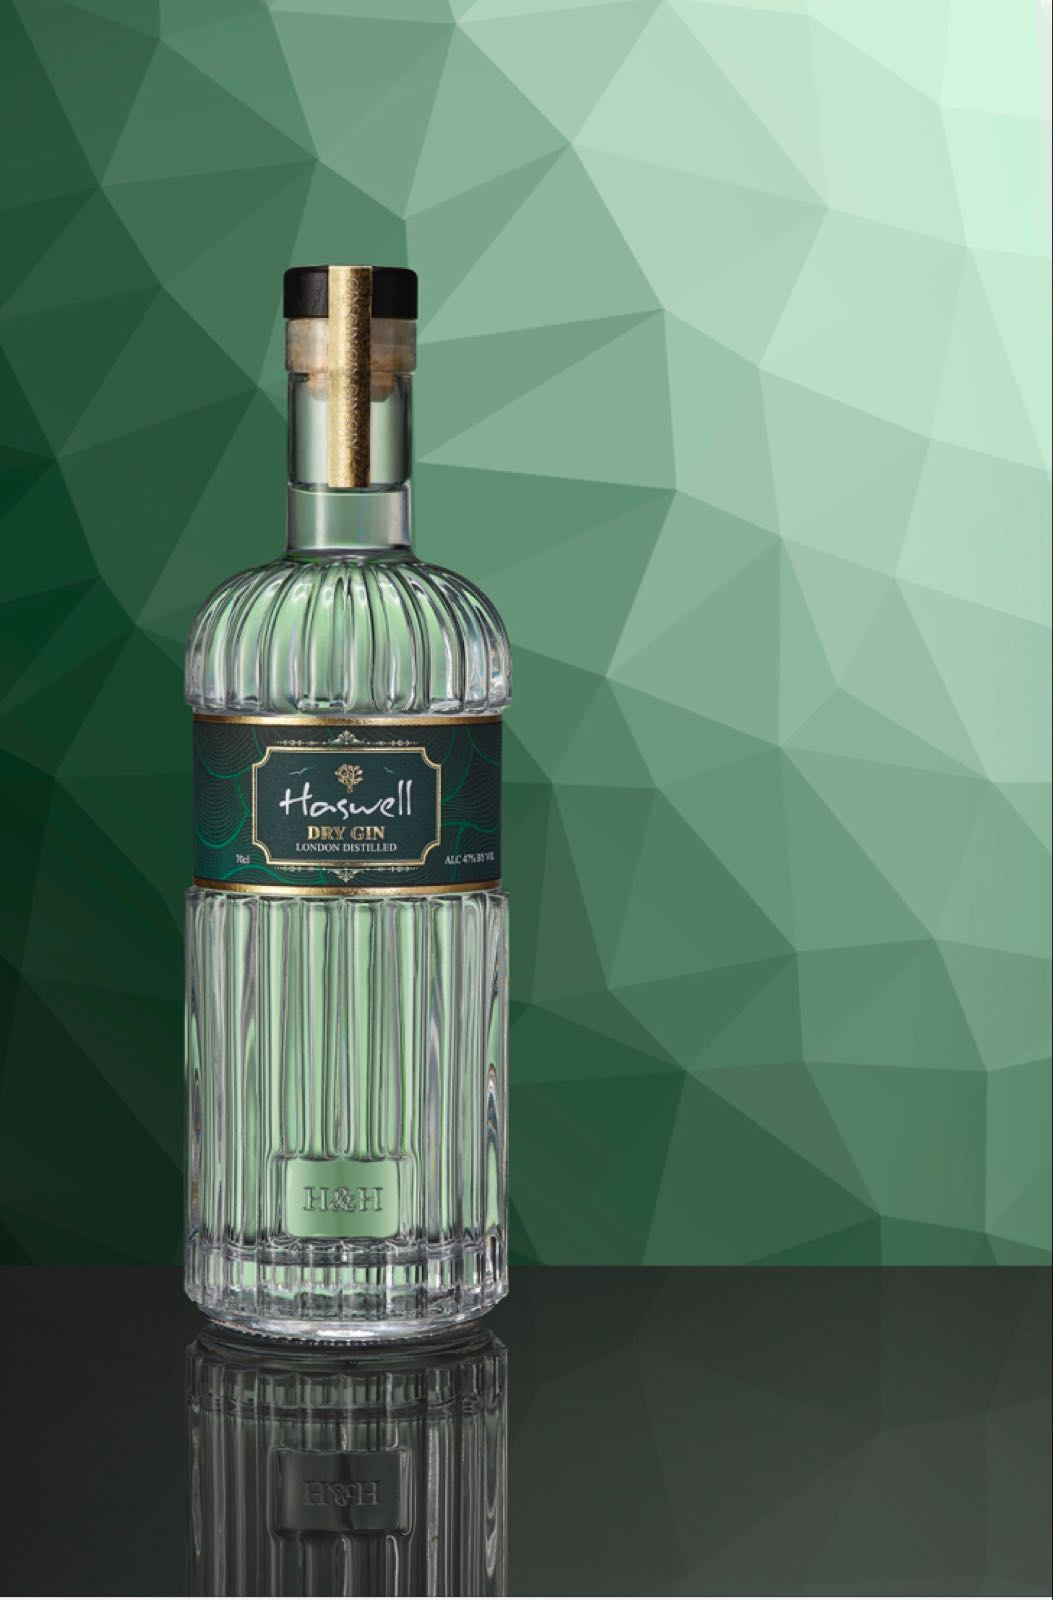 Haswell London Dry Gin 70cl@47%ABV Including UK Postage